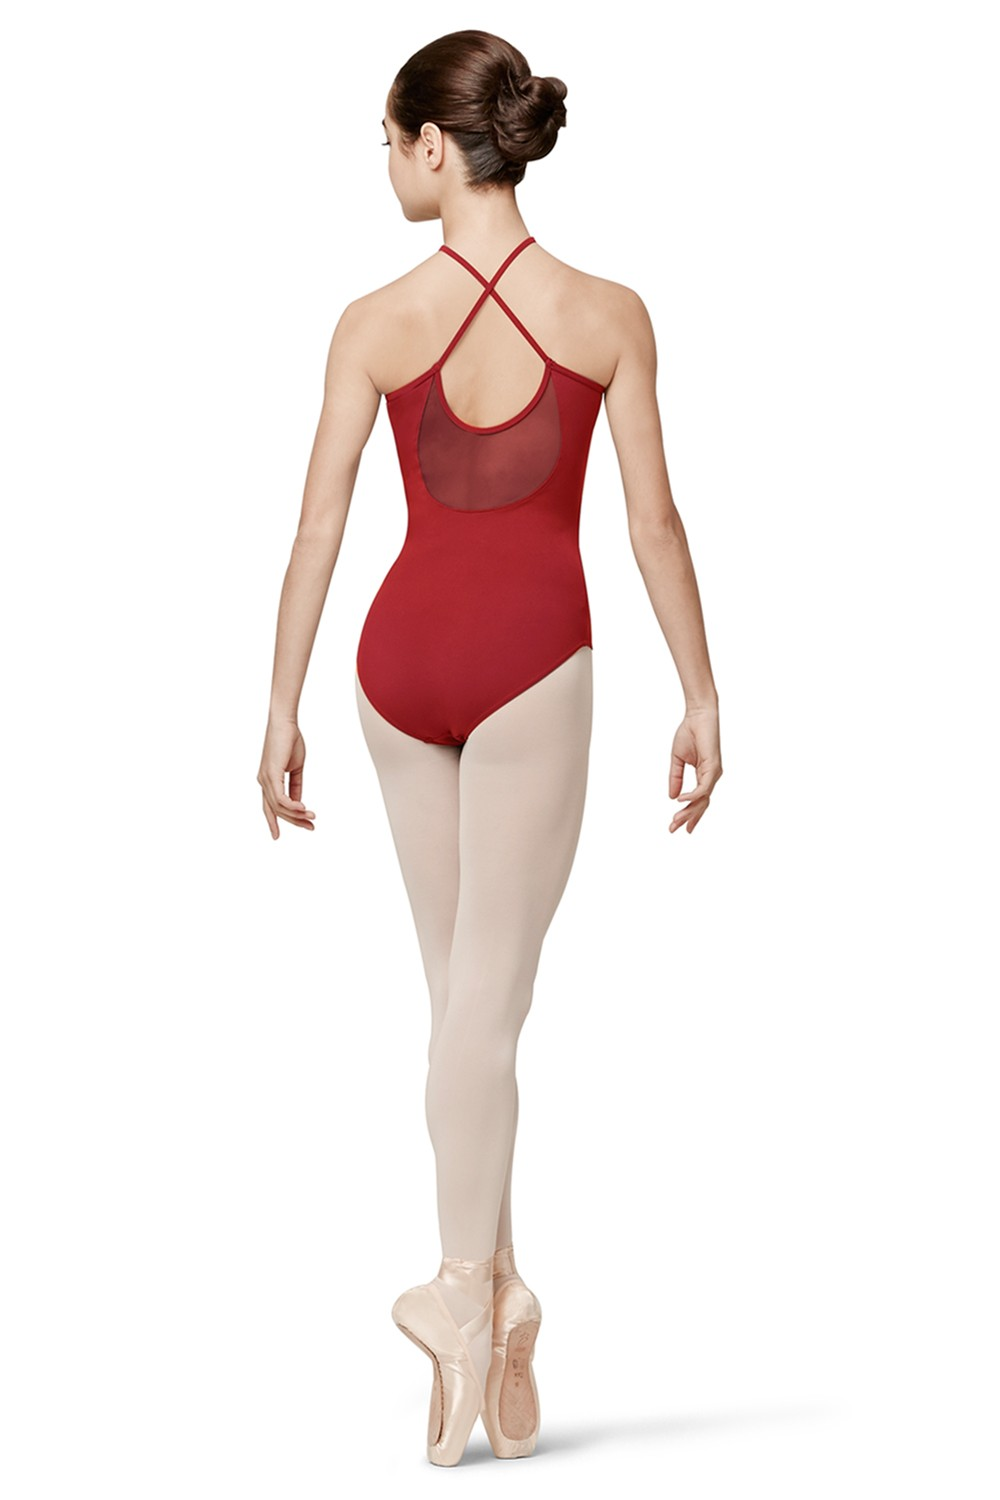 Lindeman Women's Dance Leotards